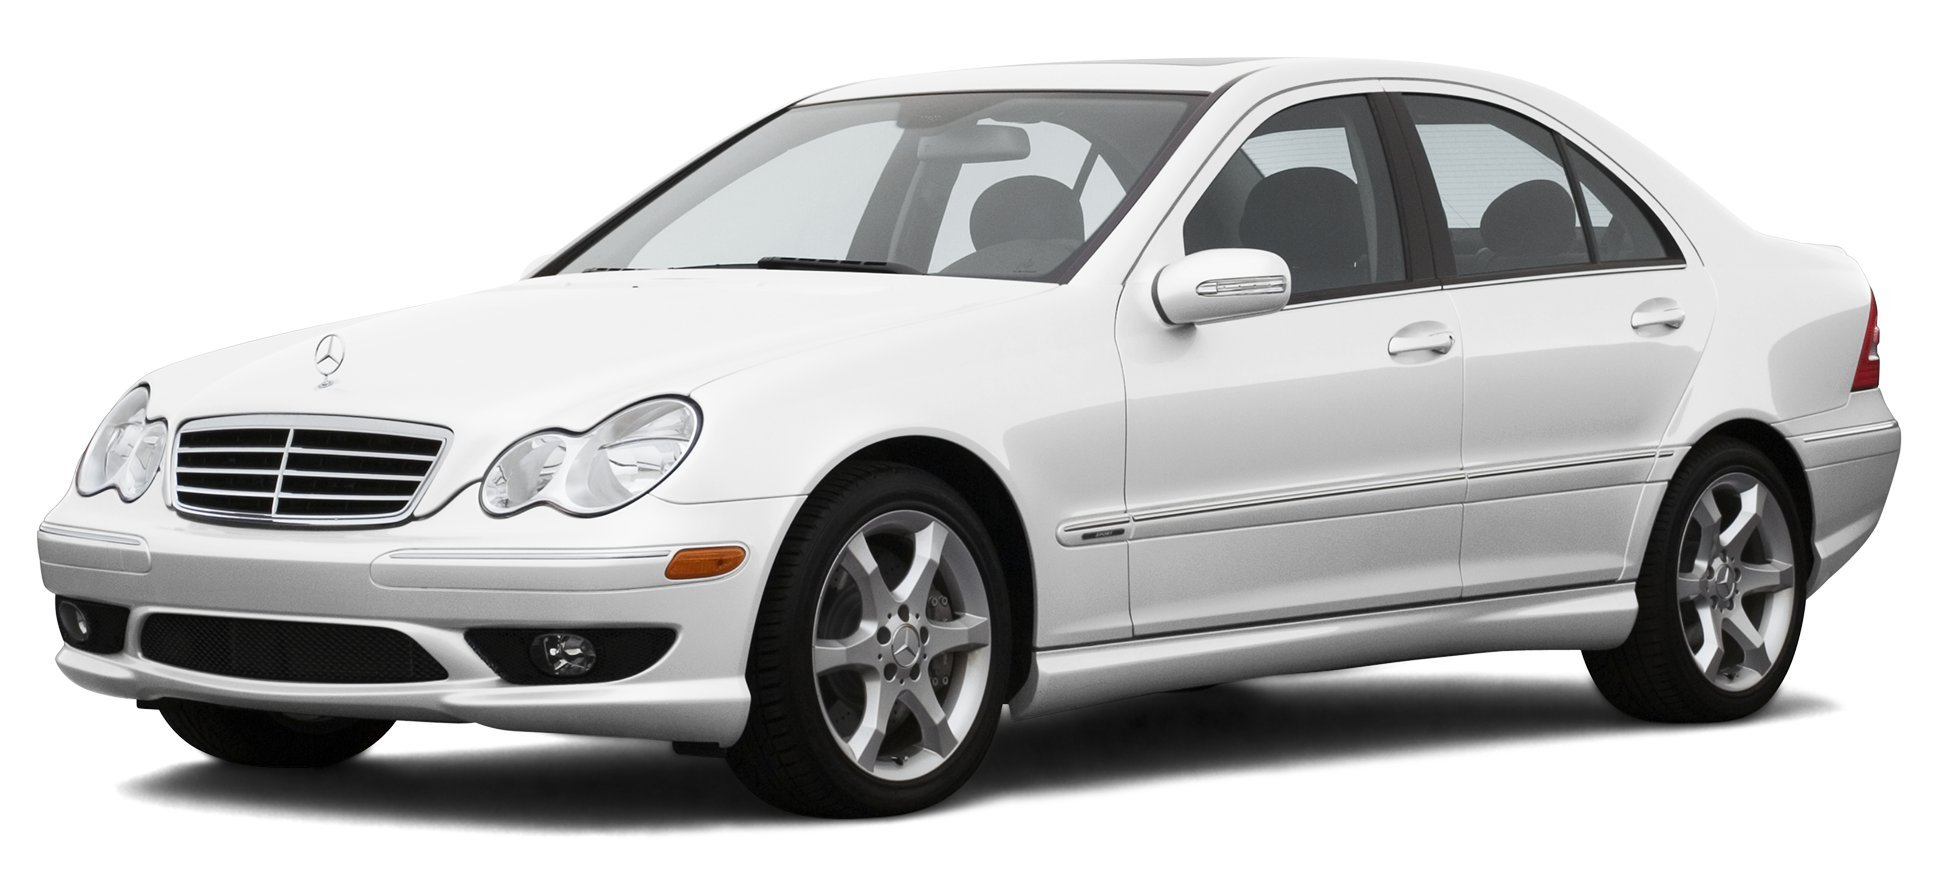 Amazoncom 2007 MercedesBenz C230 Reviews Images and Specs